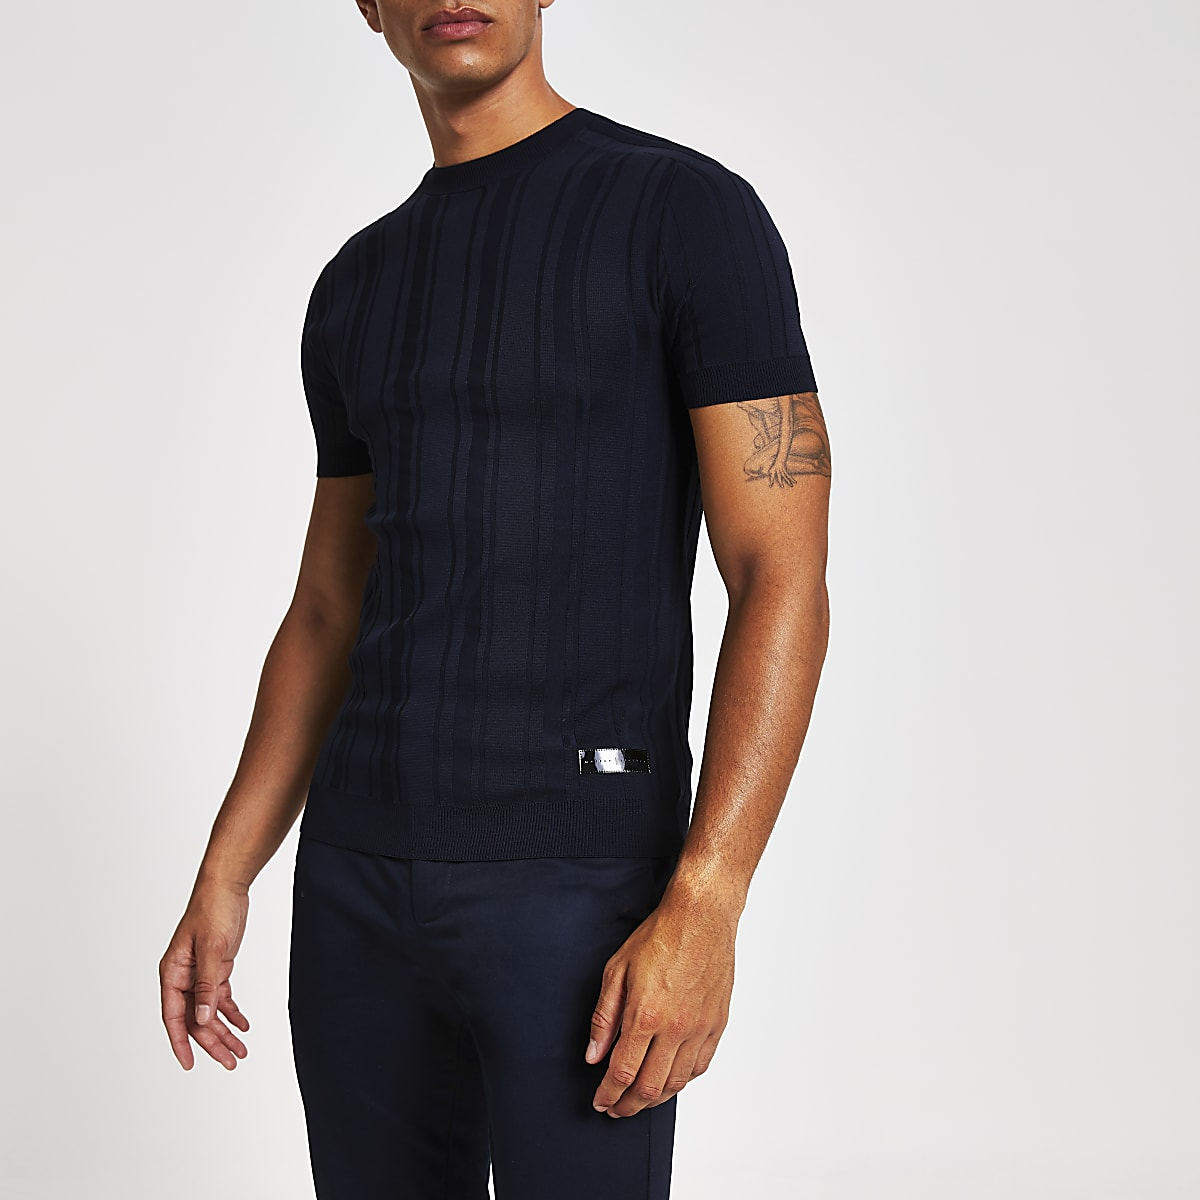 Navy ribbed muscle fit knitted T-shirt